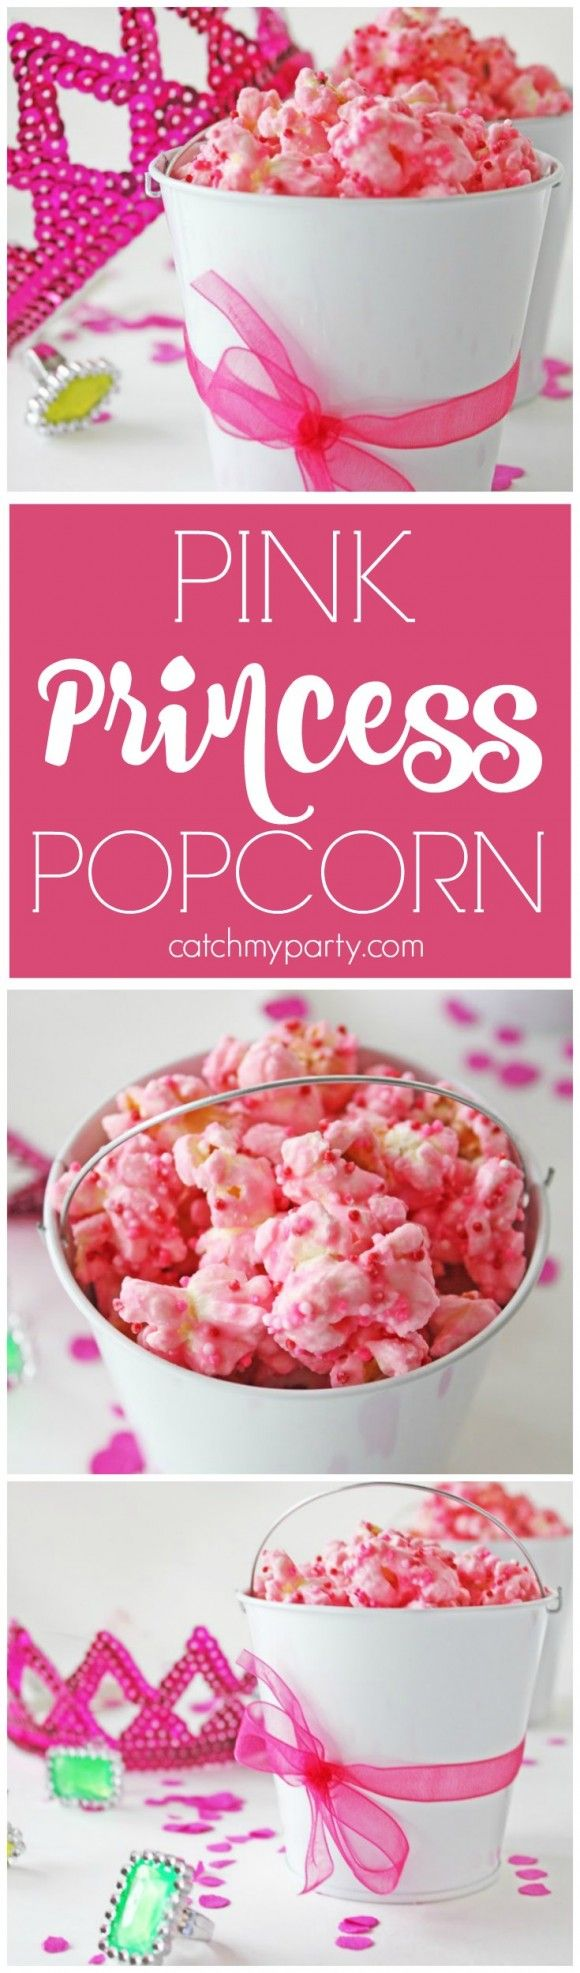 Birthday table decorations for girls - Easy Budget Friendly Pink Princess Popcorn Treat This Is A Great Birthday Party Dessert